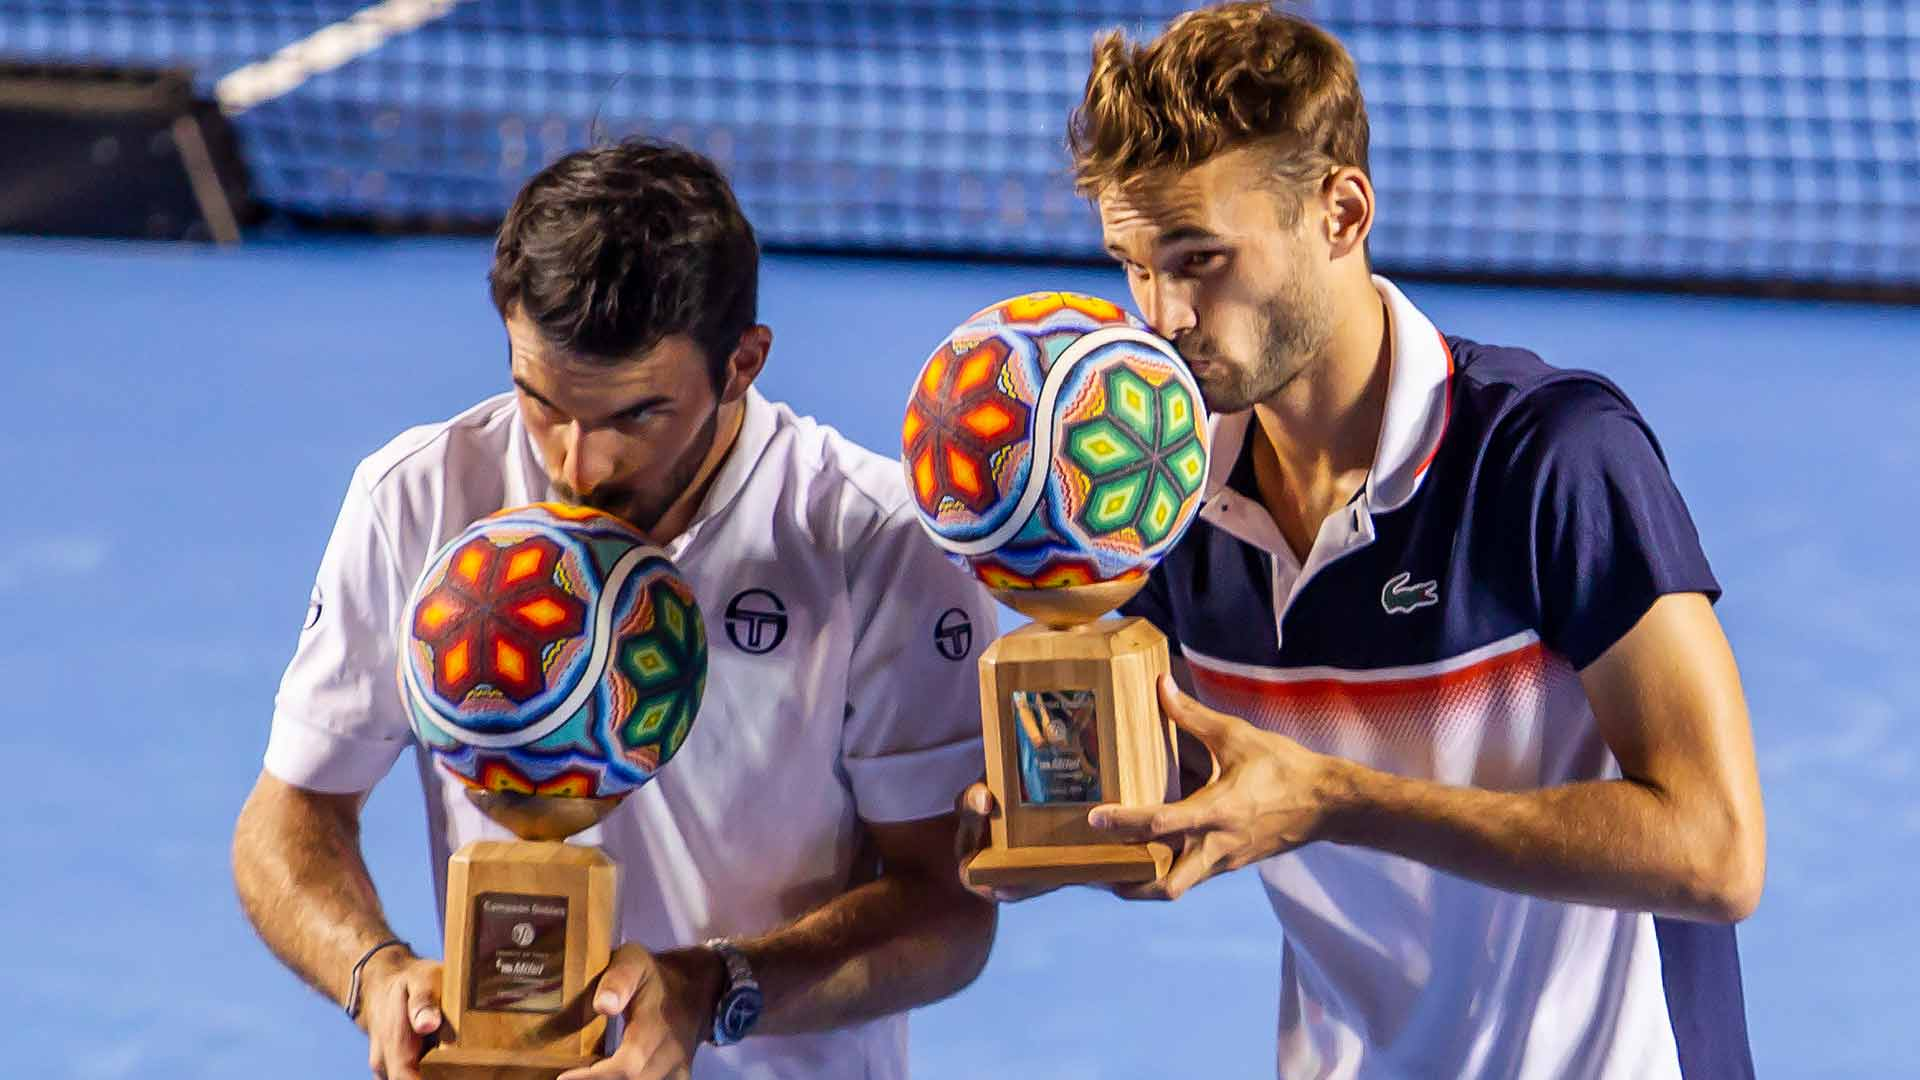 Arneodo/Nys win the Los Cabos doubles title on Saturday